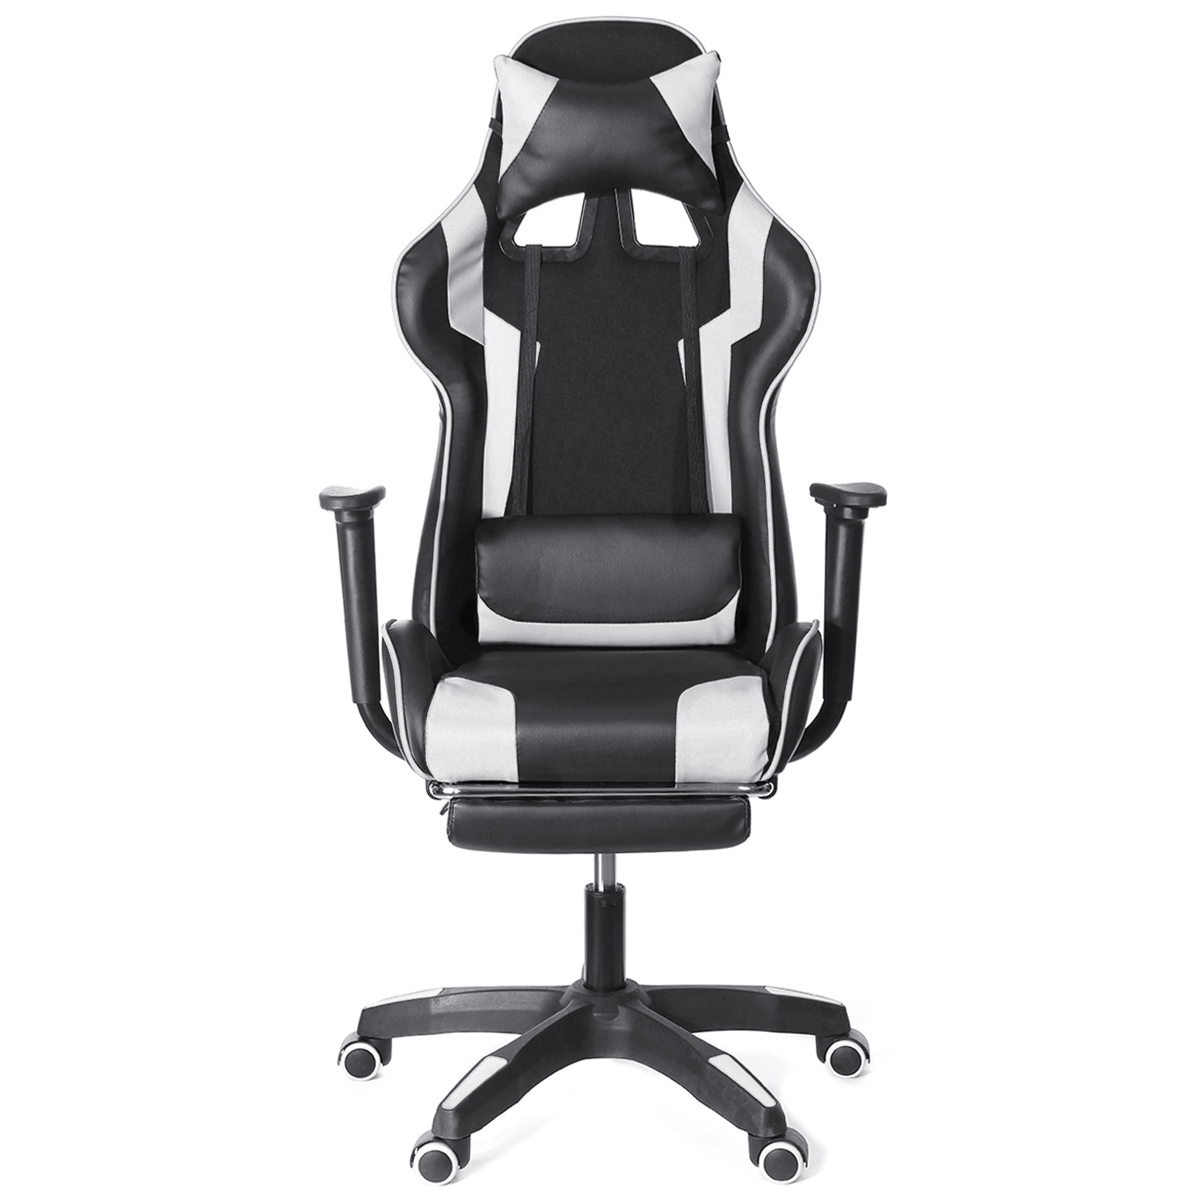 Furniture Office Chair High Back Gaming Chair Recliner Computer Laptop Desk PU Leather Seat Gamer Office Armchair With Footrest